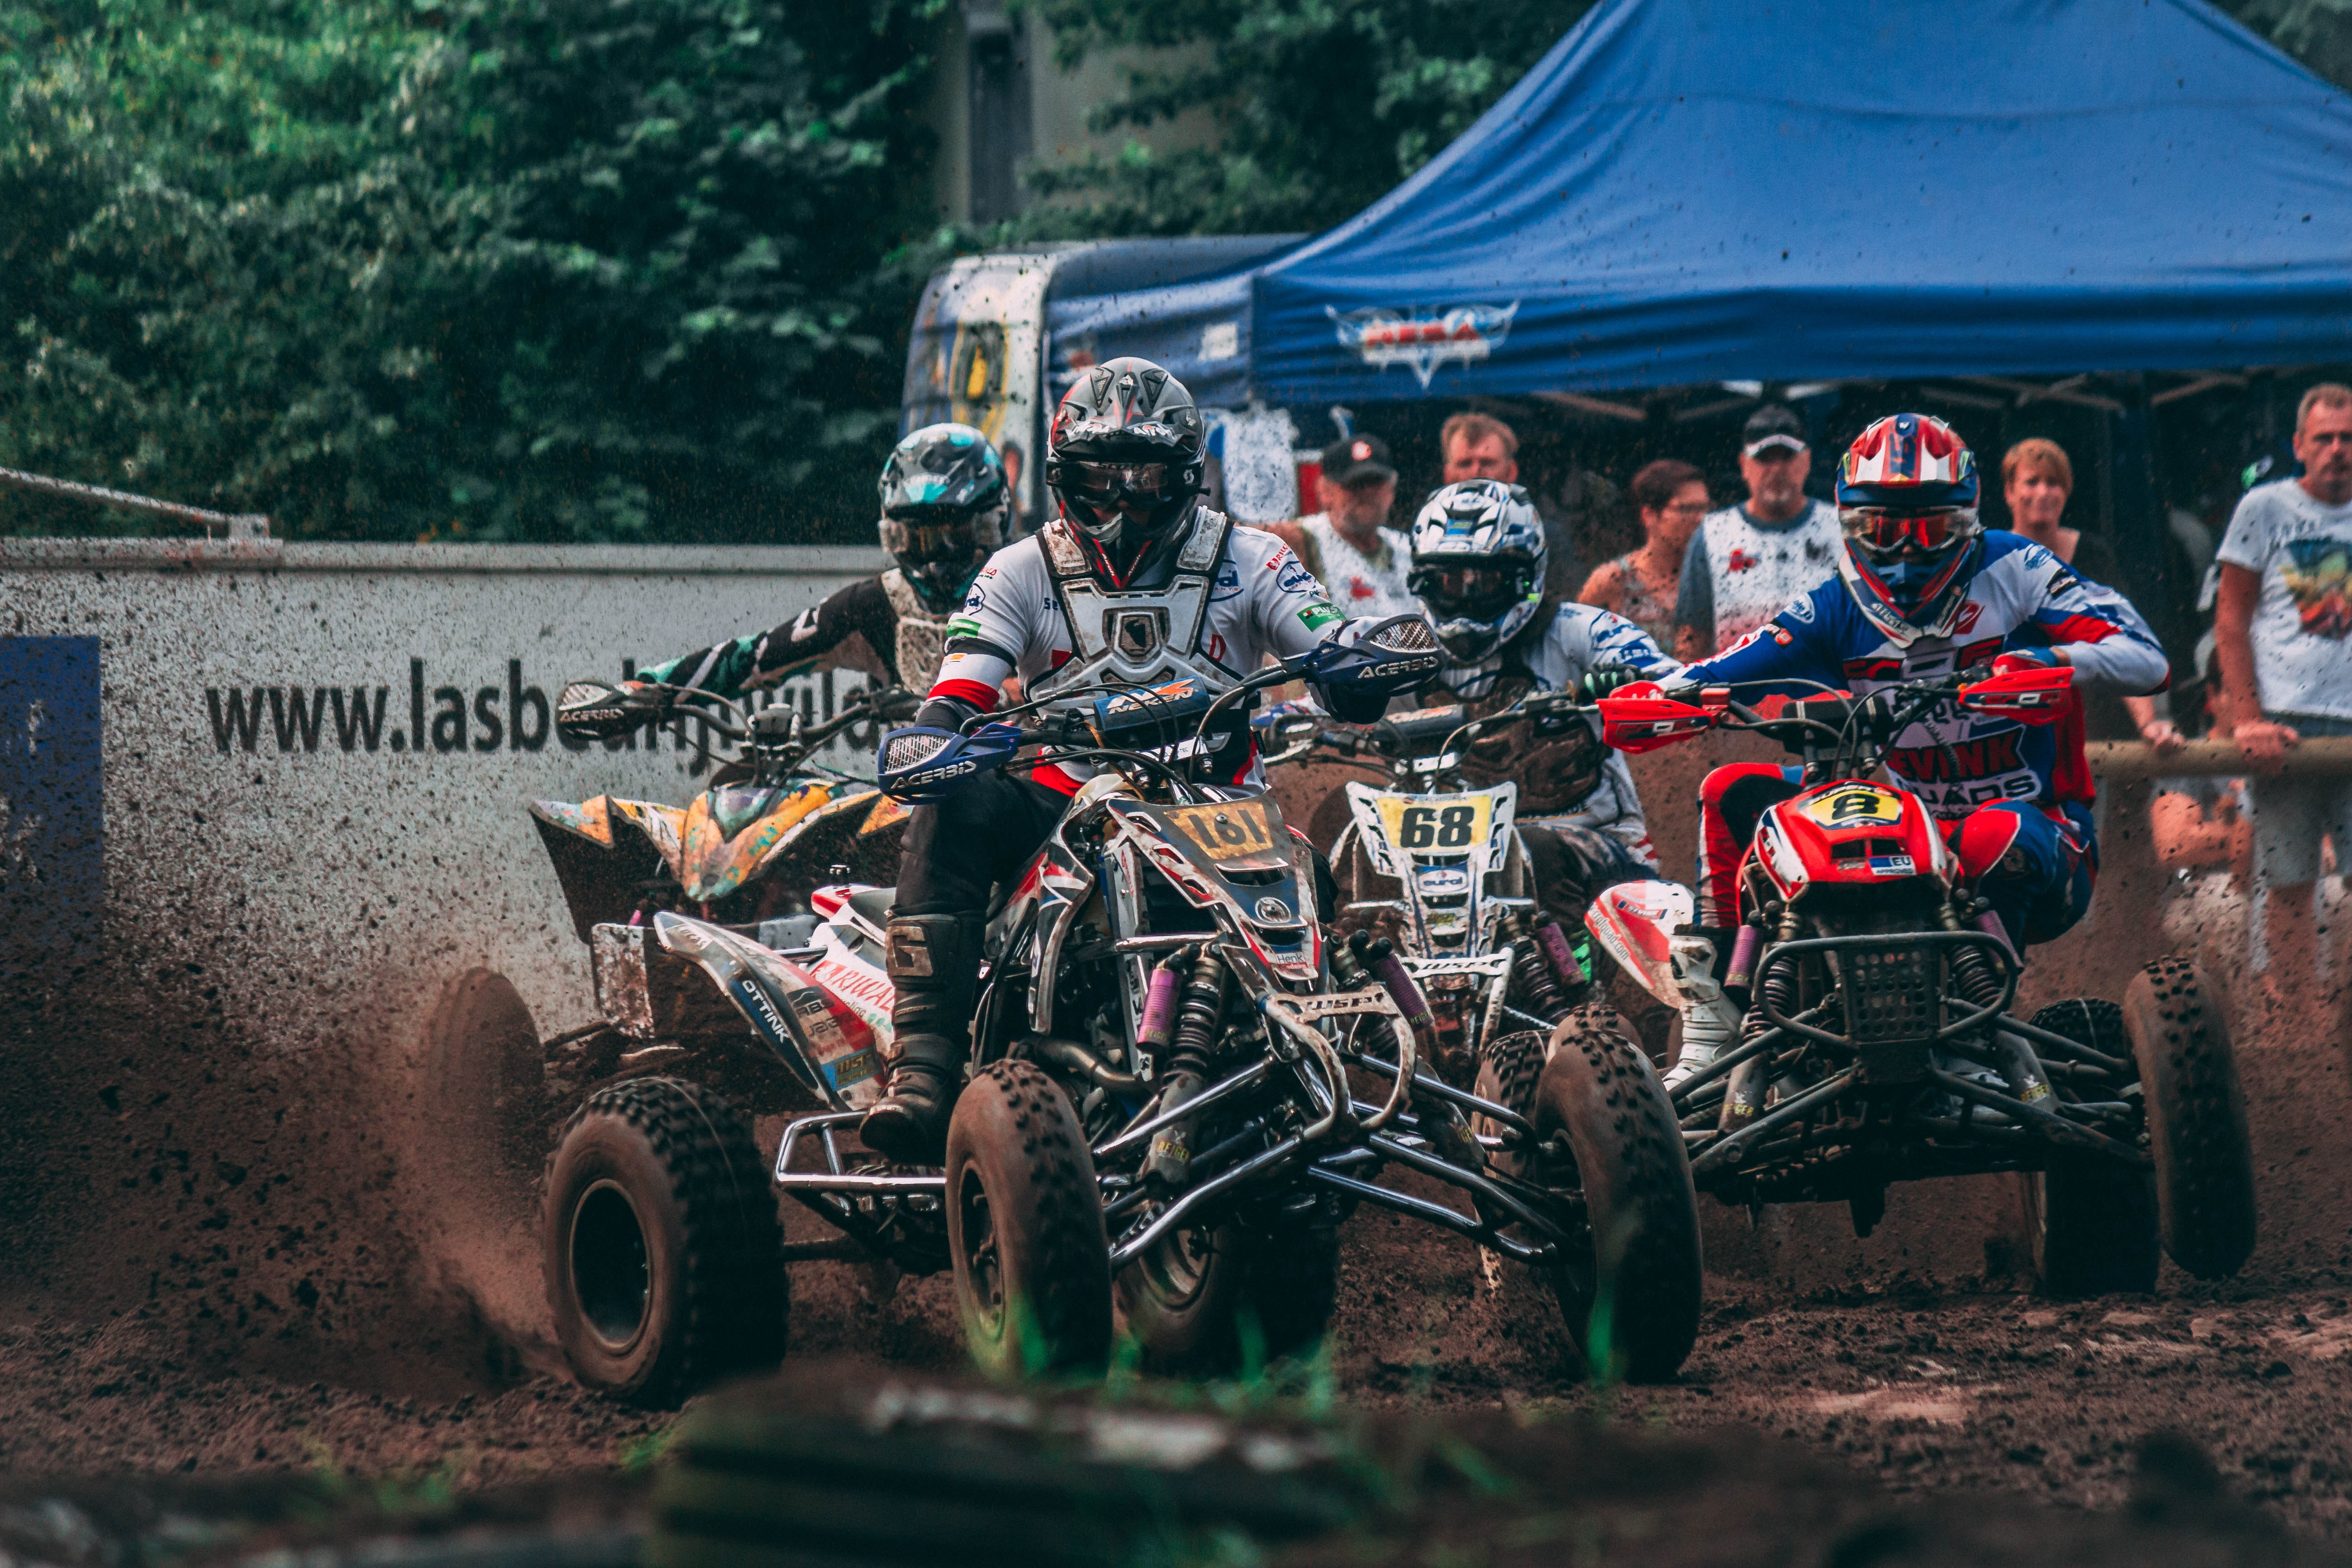 four men riding ATVs racing on mud with people watching during daytime